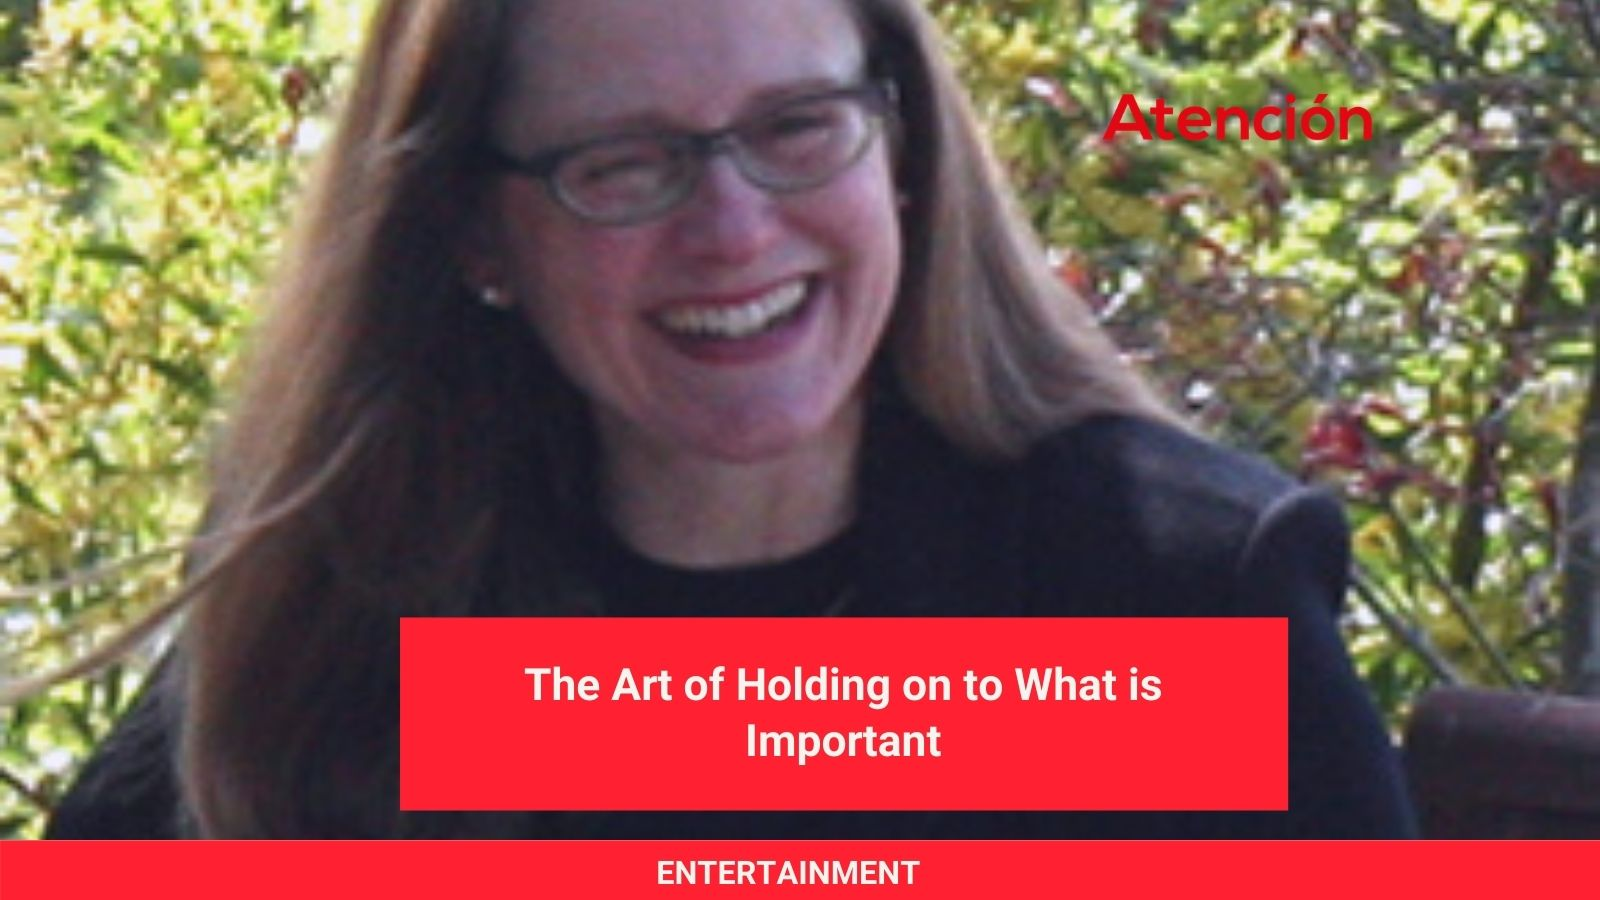 The-Art-of-Holding-on-to-What-is-Important.jpg